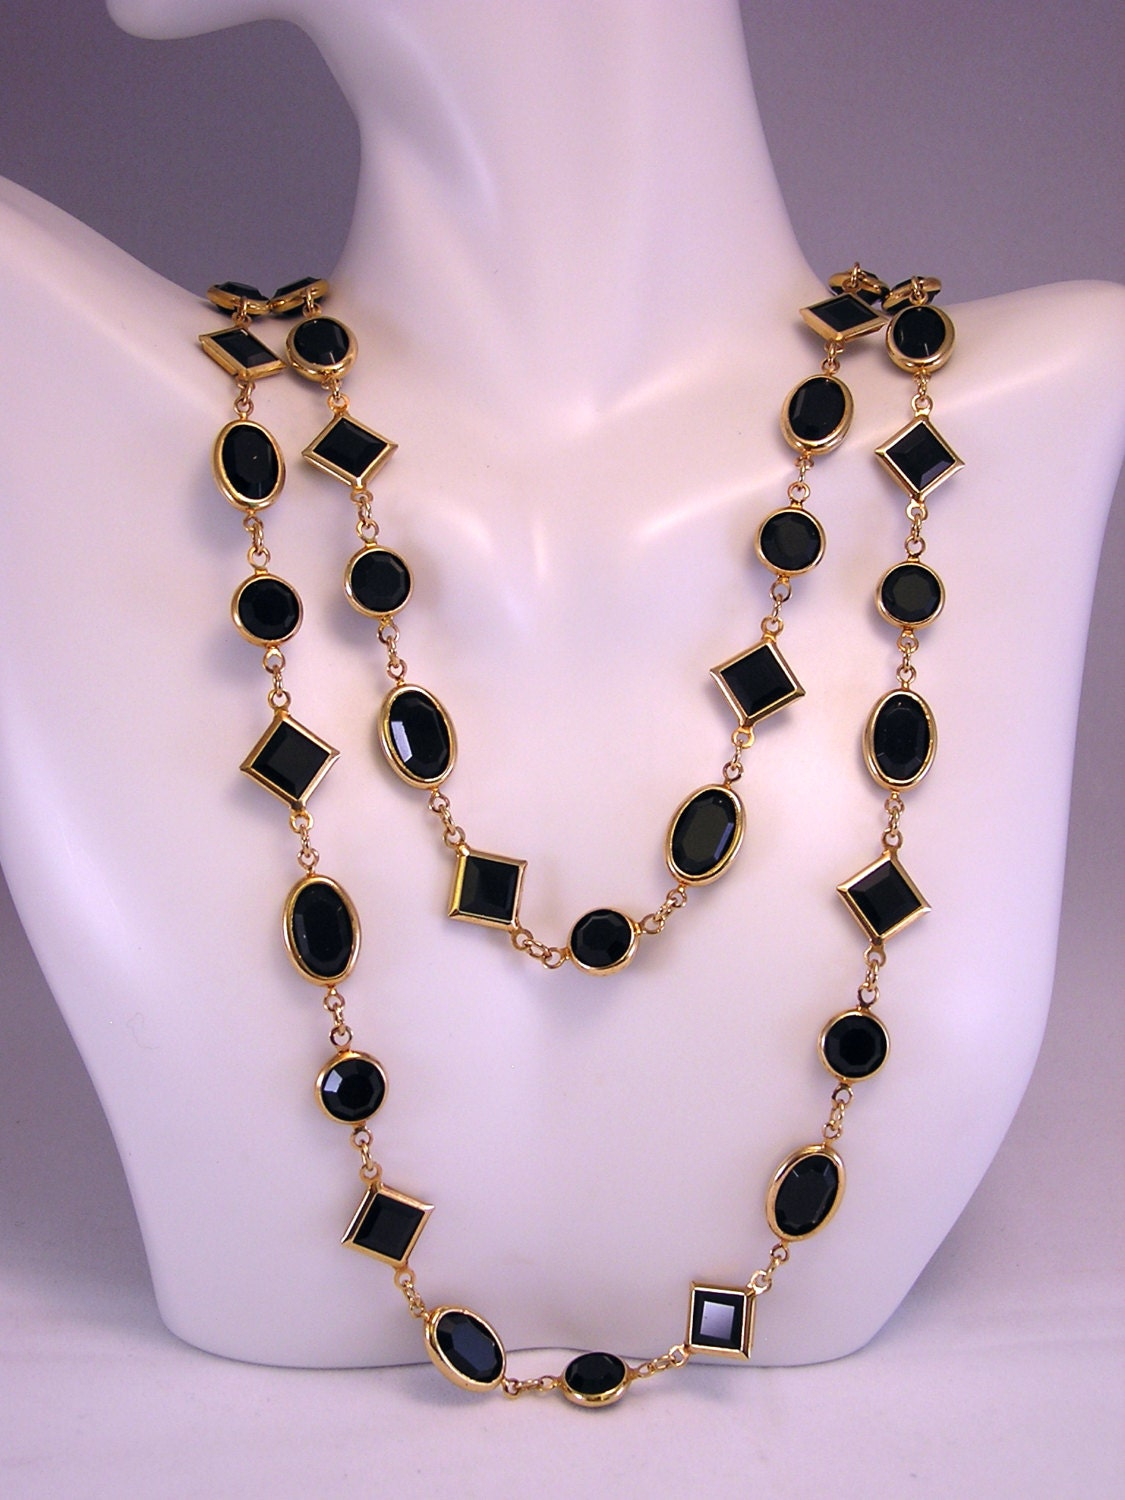 layered necklace long necklace black necklace glass bead. Black Bedroom Furniture Sets. Home Design Ideas